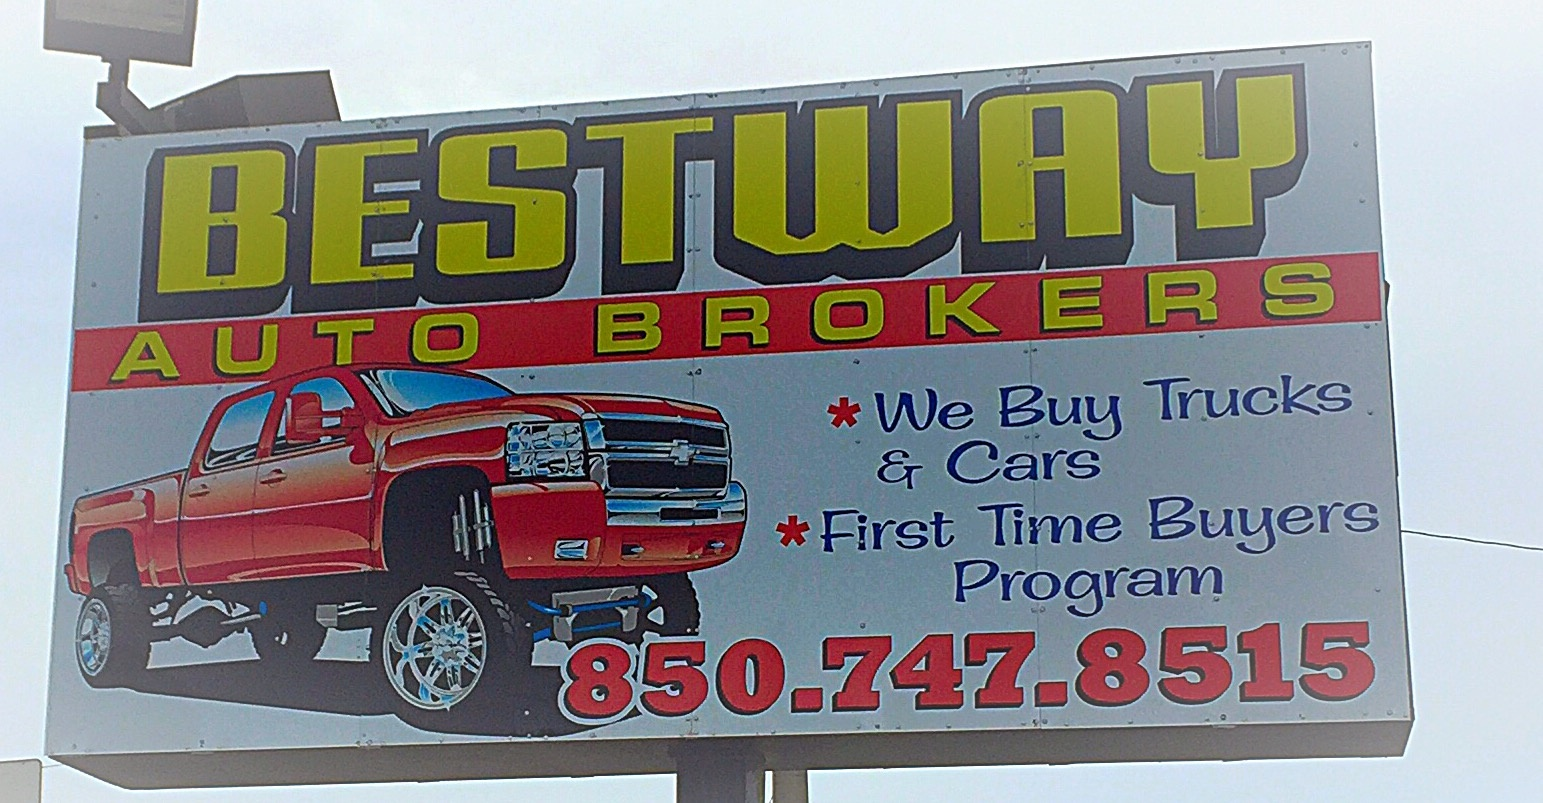 Bestway Auto Brokers Panama City Fl Read Consumer Reviews